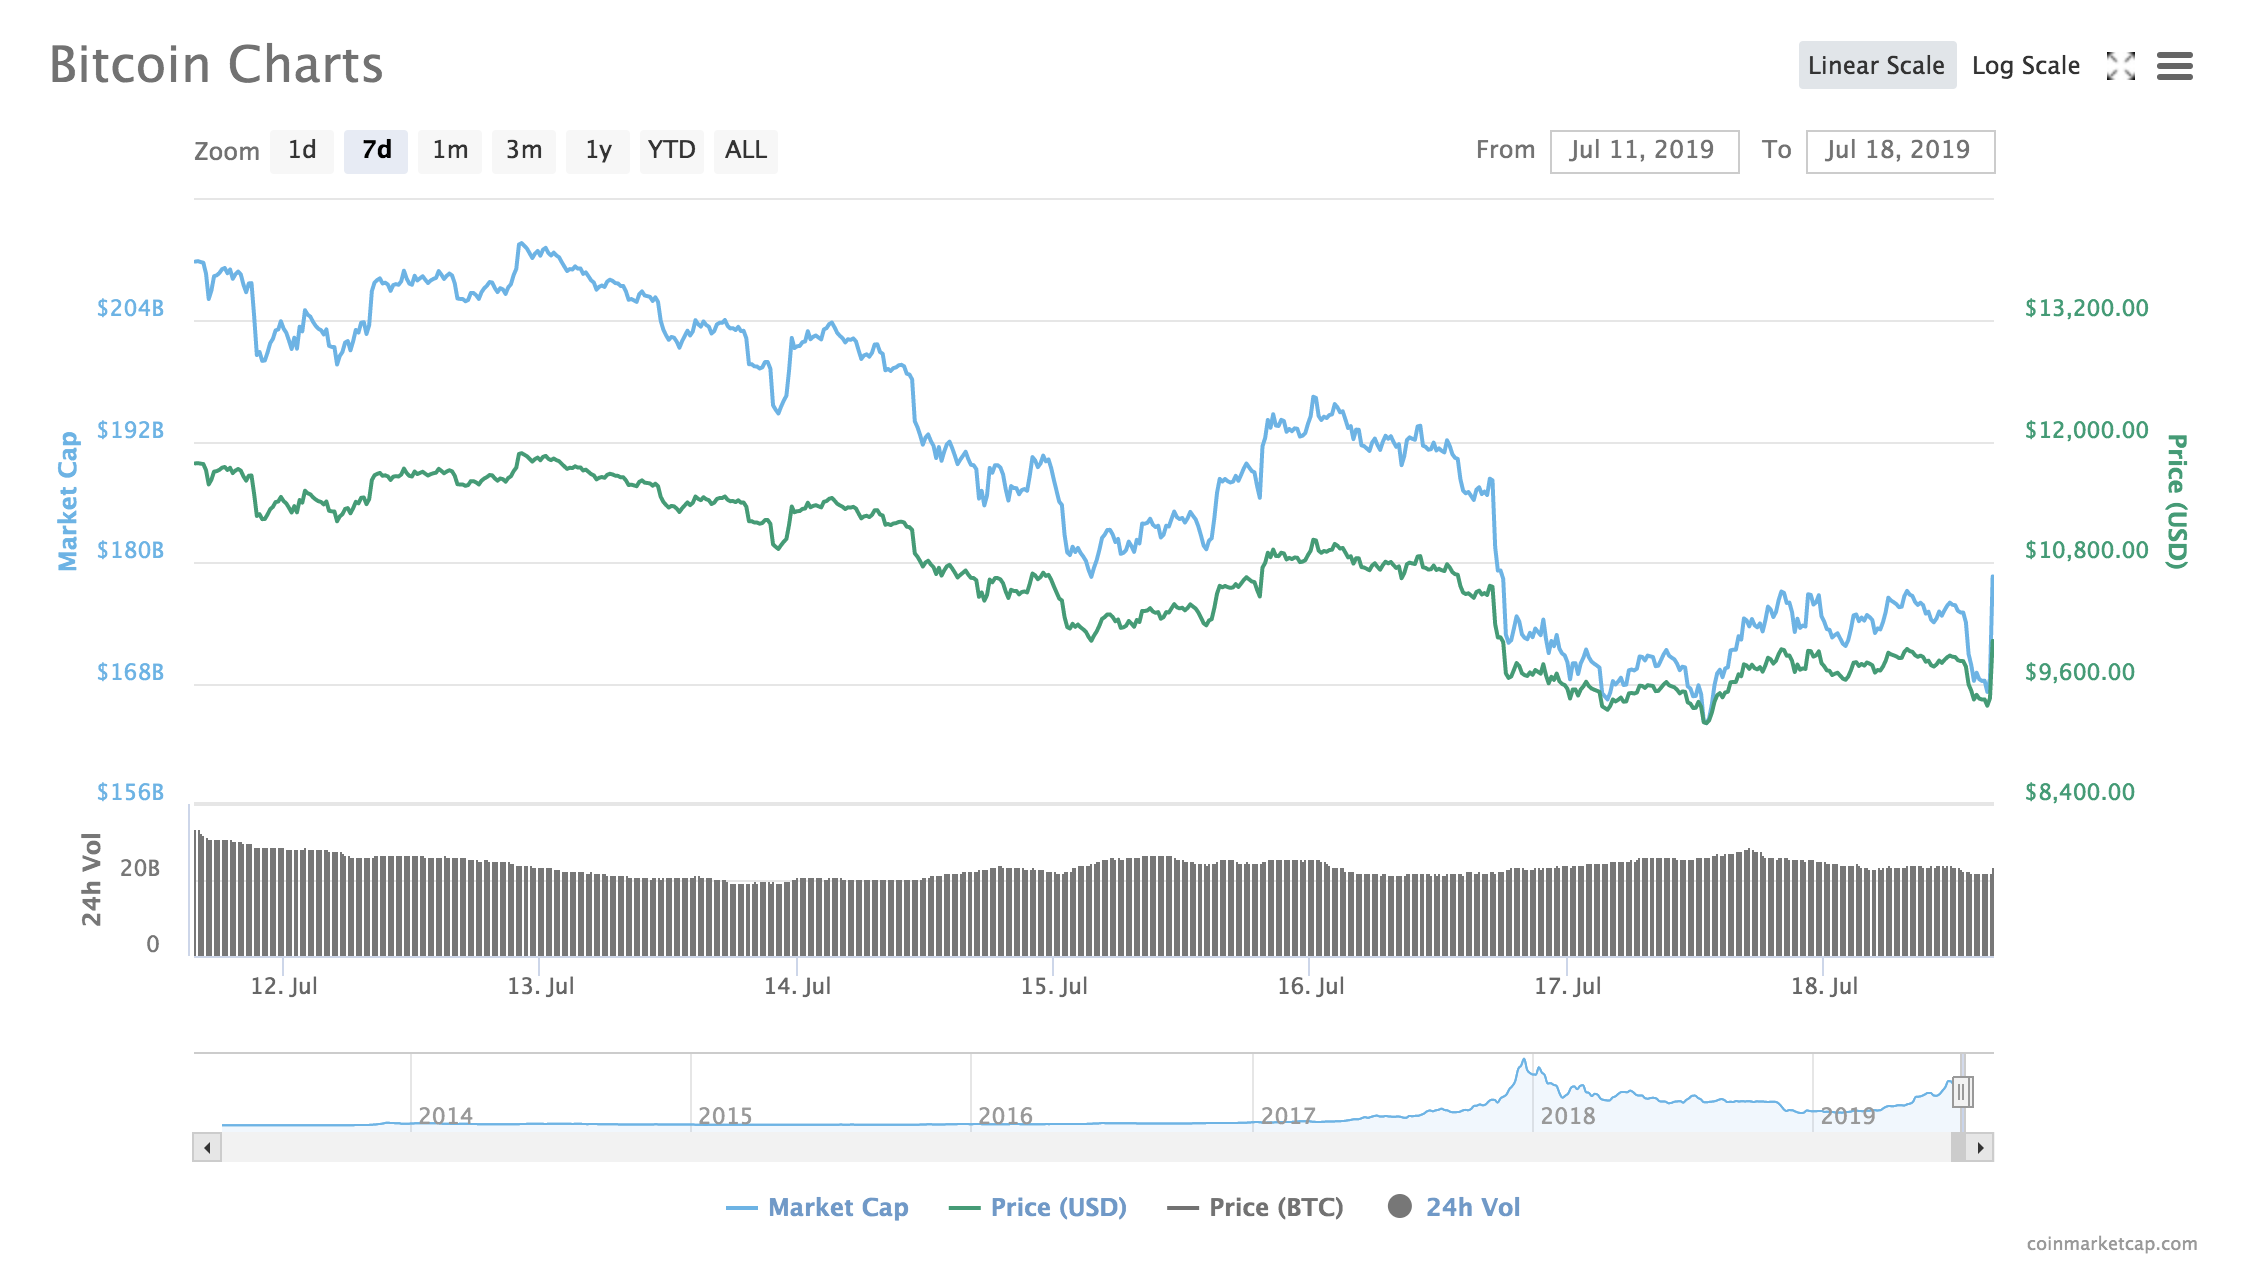 Bitcoin Price from July 11 to July 18. Source: Coinmarketcap